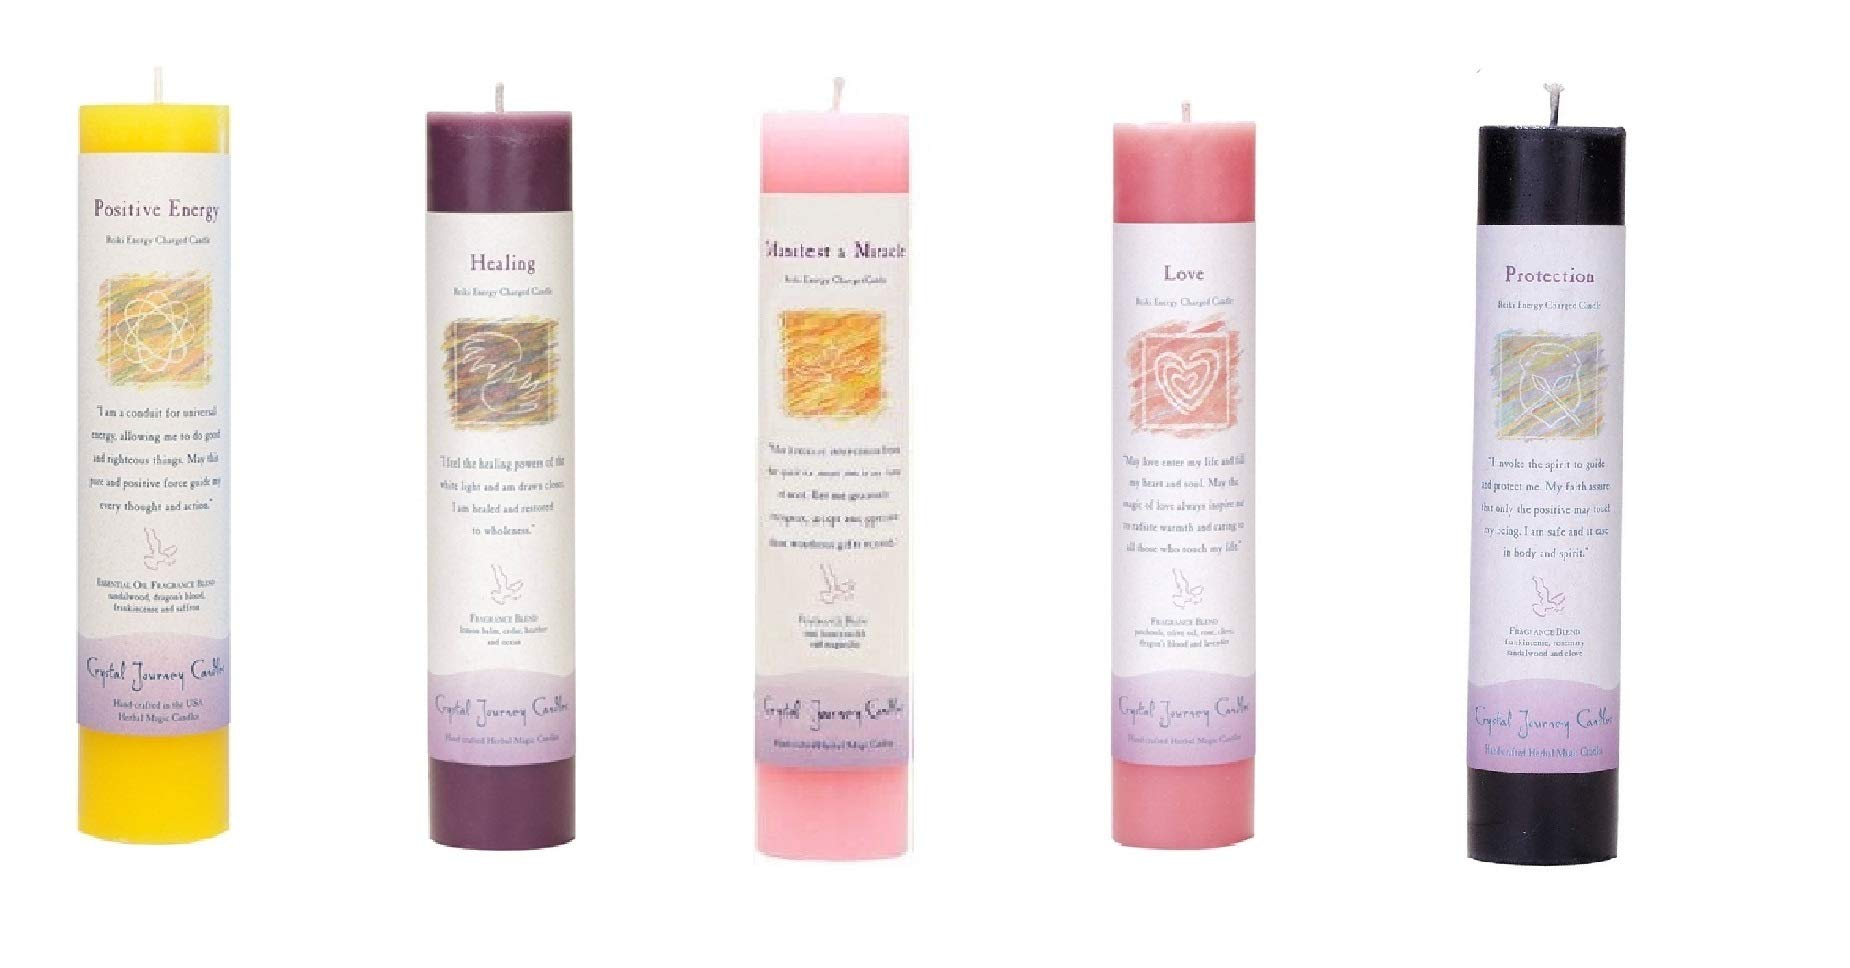 Crystal Journey Reiki Charged Herbal Magic Pillar Candle with Inspirational Labels - 5 Pack (Manifest a Miracle, Healing, Positive Energy, Love, Protection), Each 7''x1.5'' Handcrafted, Lead-Free